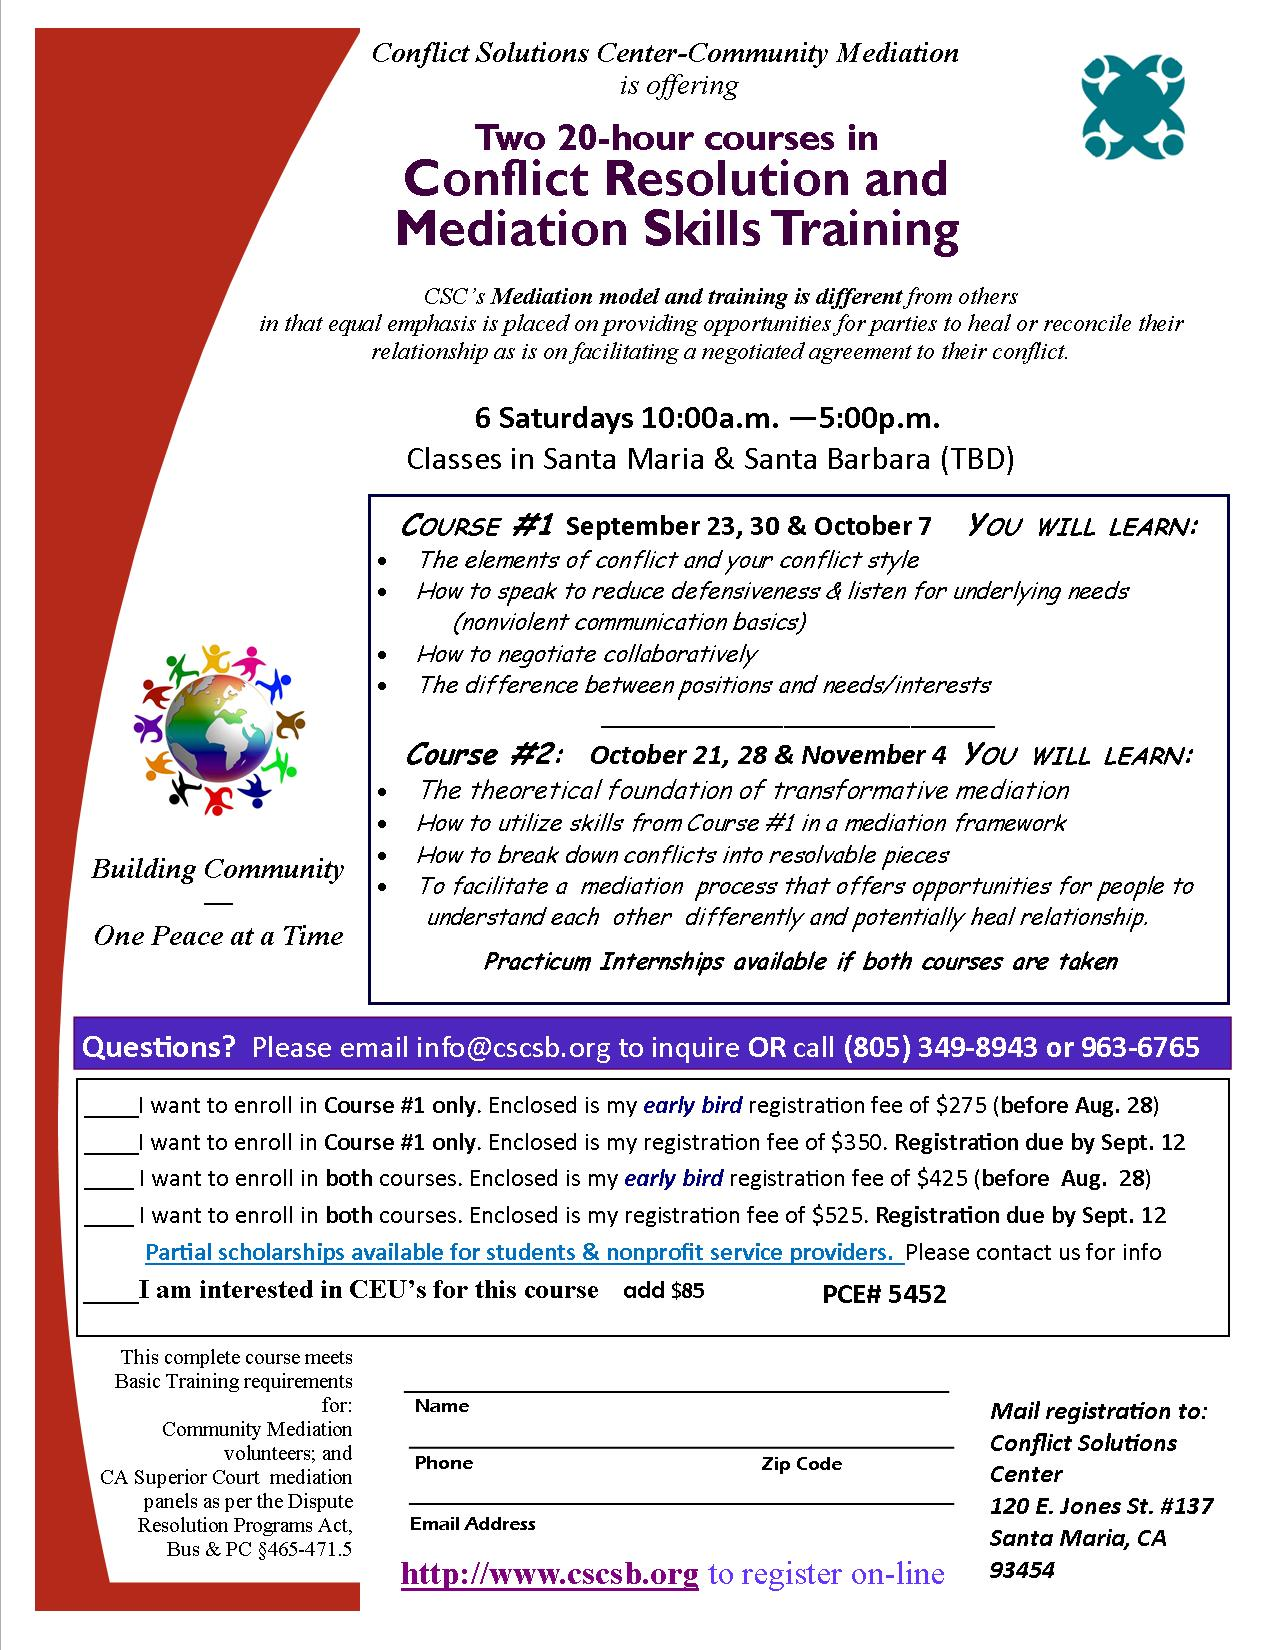 Conflict Resolution and Mediation Training